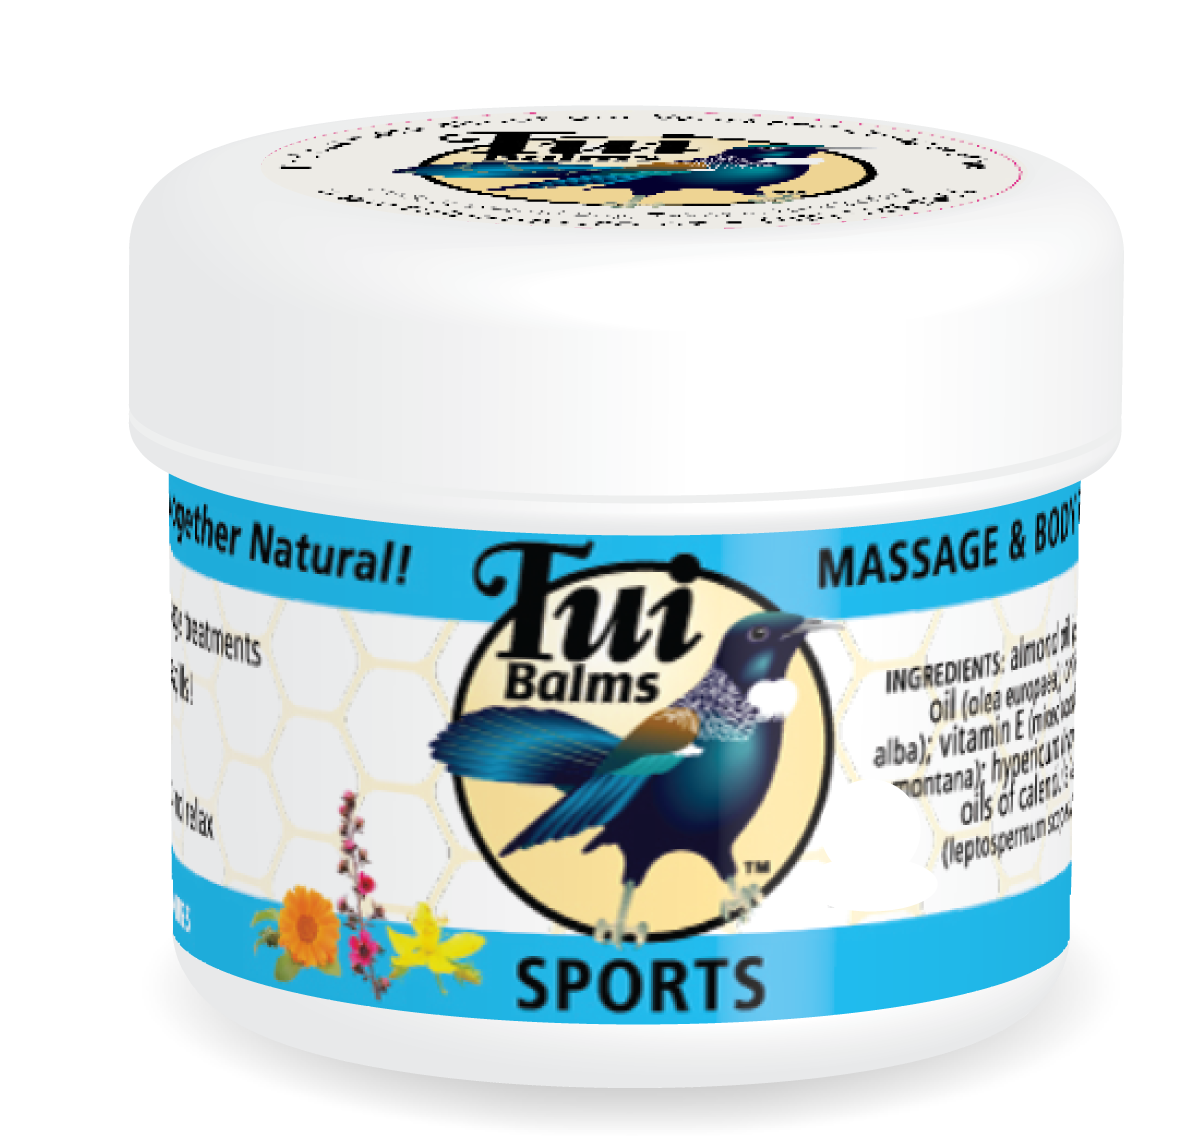 Massage & Body Balm SPORTS